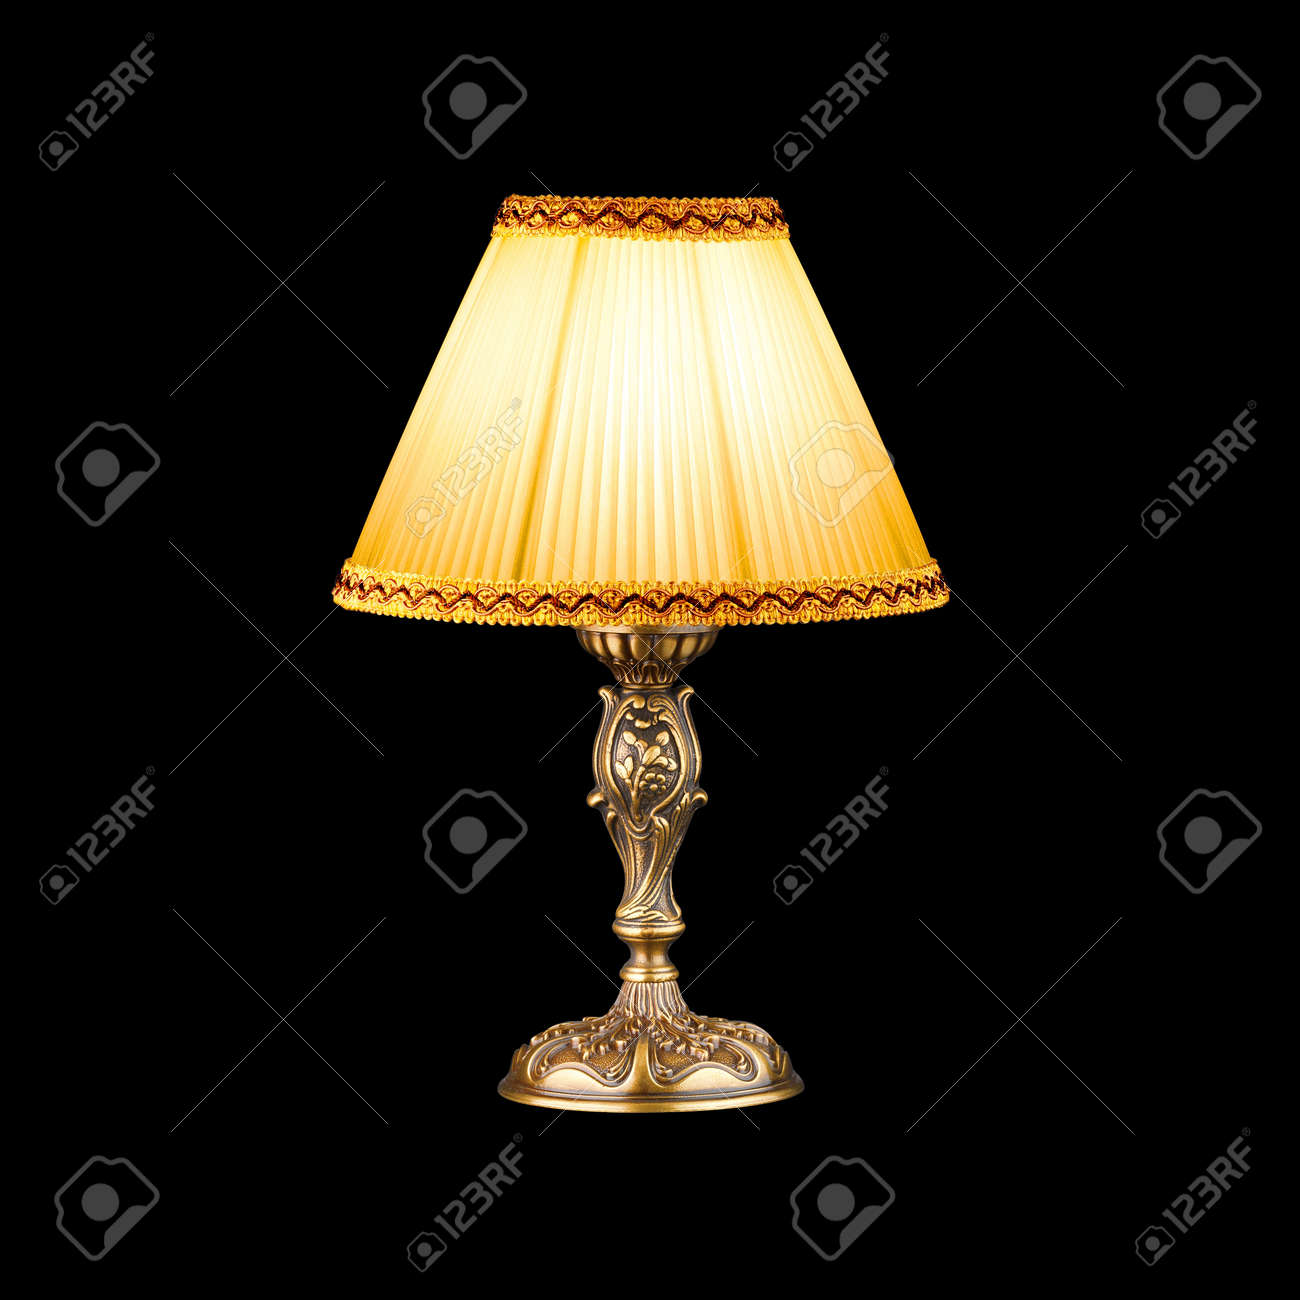 vintage table lamp isolated on black with clipping path Stock Photo - 14945436